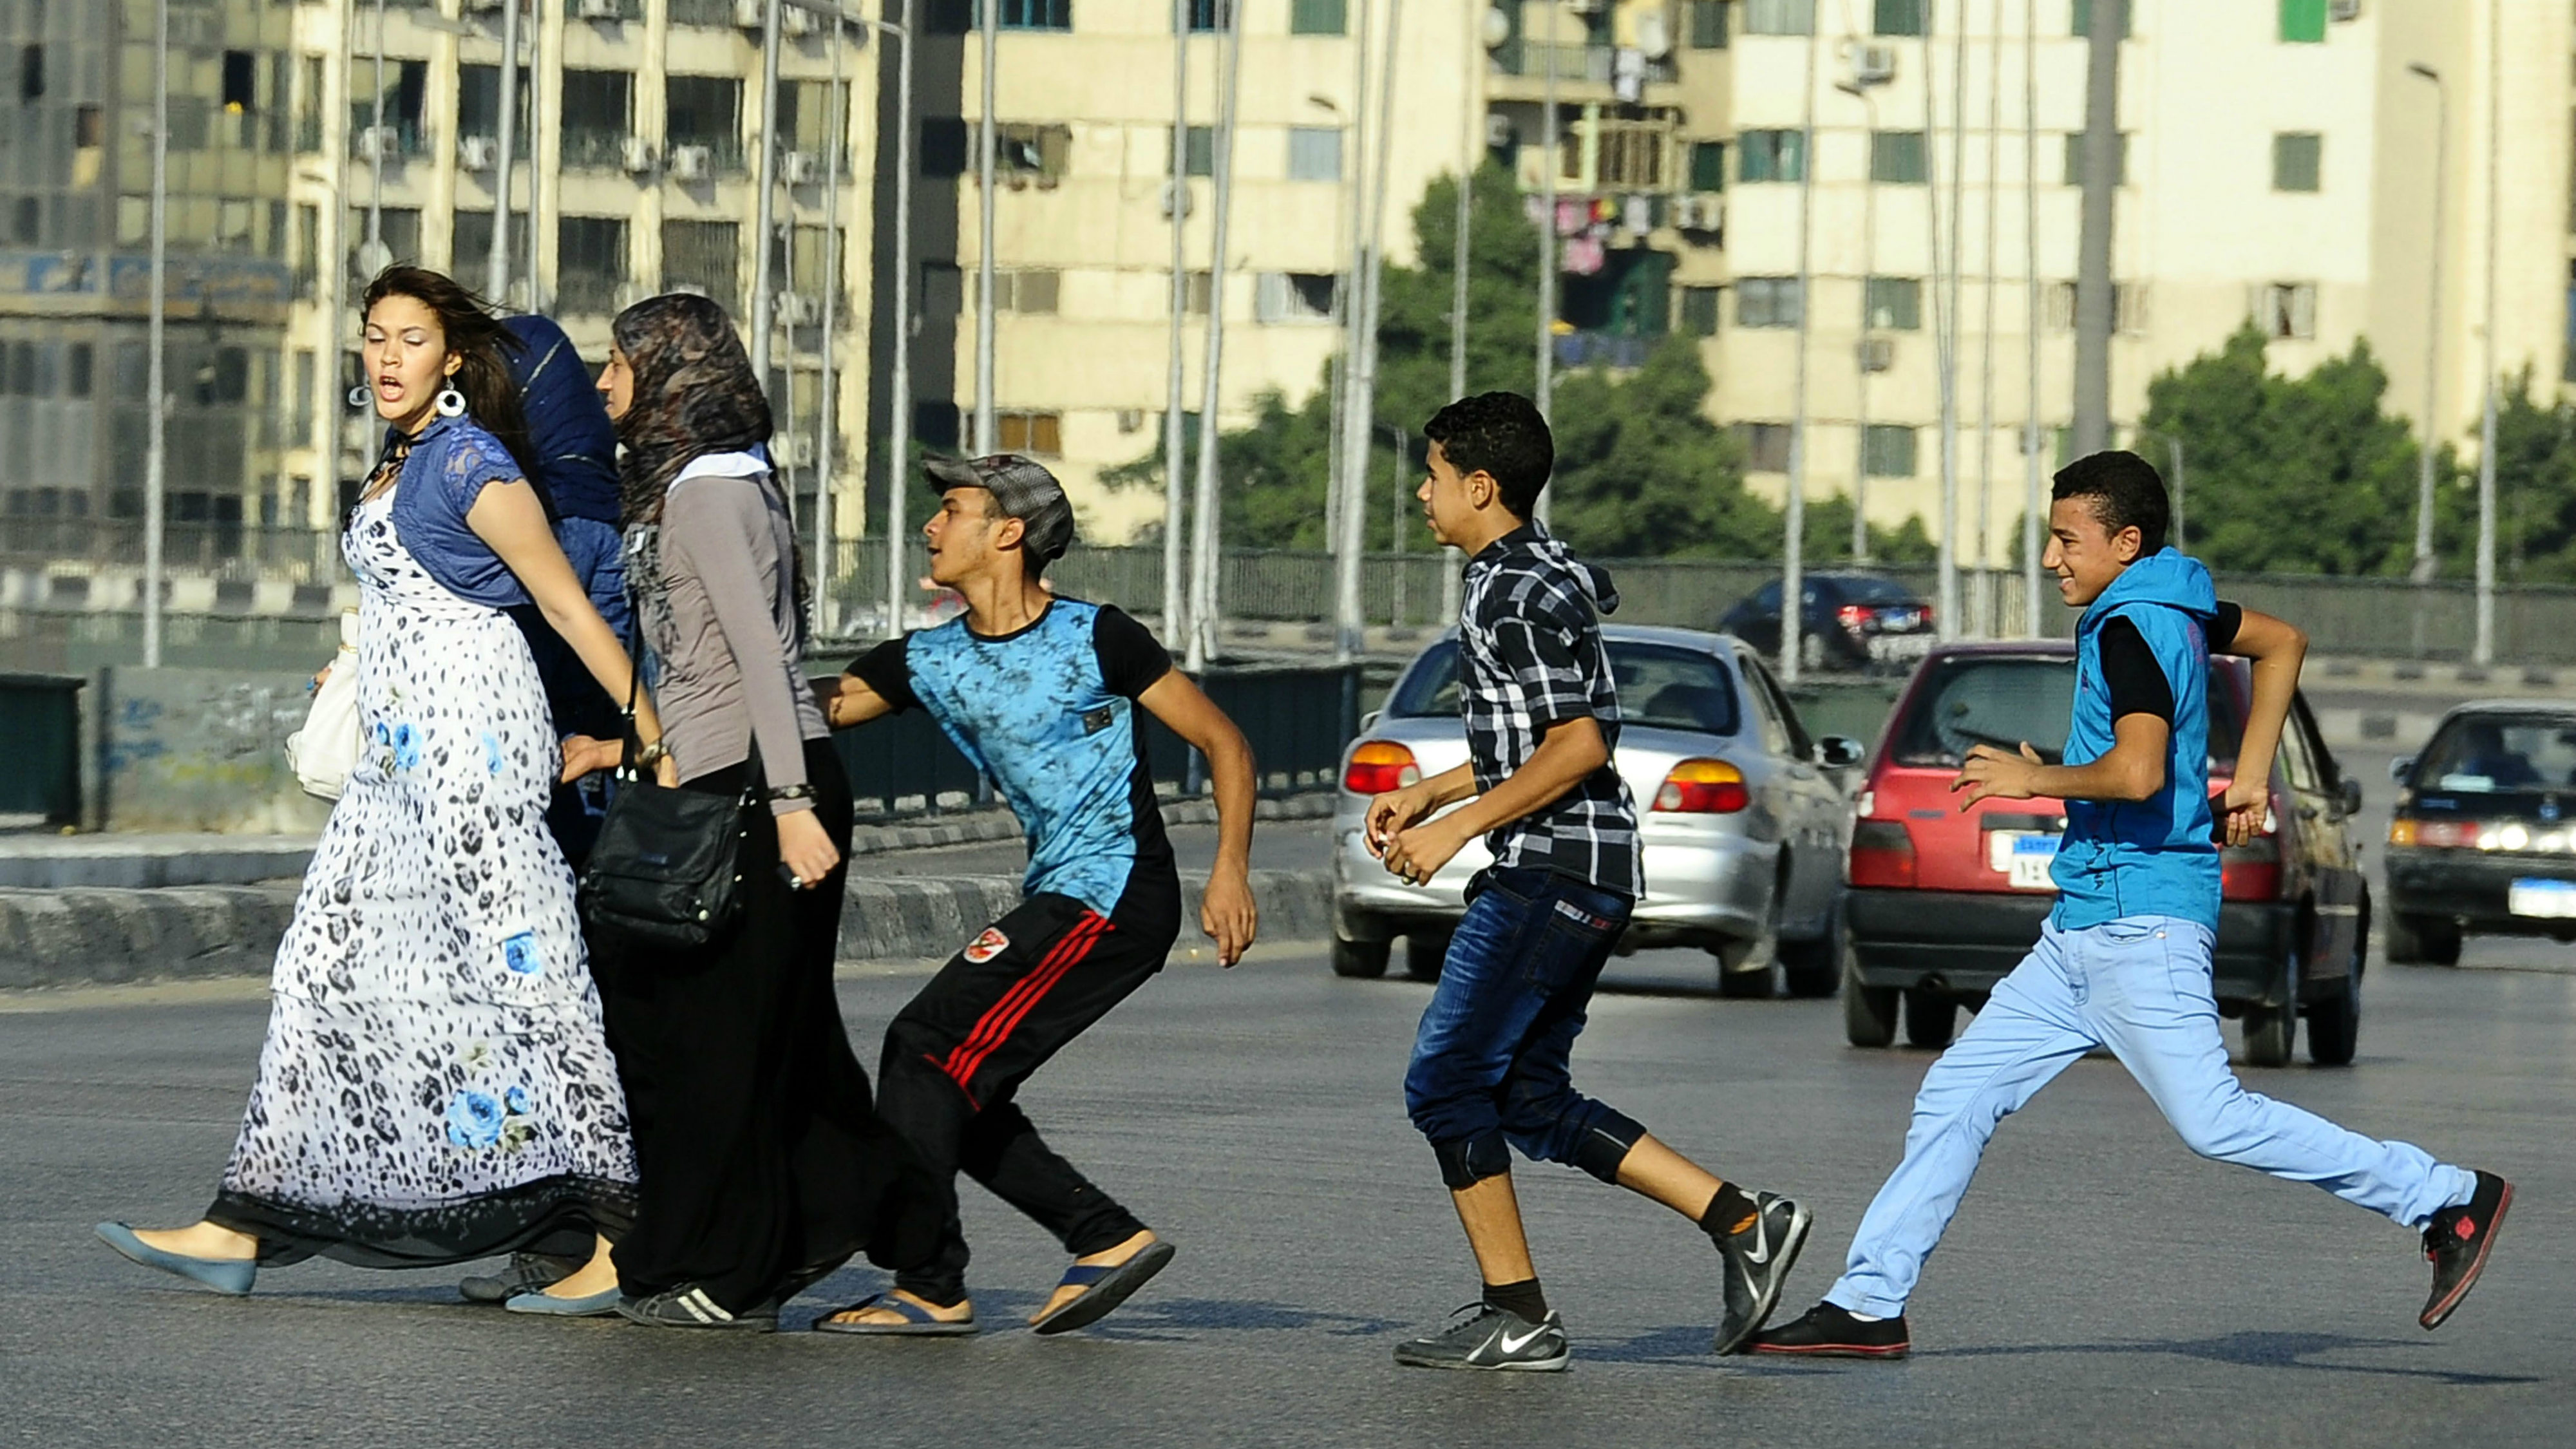 In this Monday, Aug. 20, 2012 file photo, an Egyptian youth, trailed by his friends, gropes a woman crossing the street with her friends in Cairo, Egypt. Abdel-Fattah el-Sissi, Egypt's newly sworn-in president, has apologized in person to a woman who was sexually assaulted by a mob during weekend celebrations marking his inauguration. Several women were assaulted during the Sunday, June 8, 2014 inaugural festivities. (AP Photo/Ahmed Abd El Latif, El Shorouk Newspaper, File)